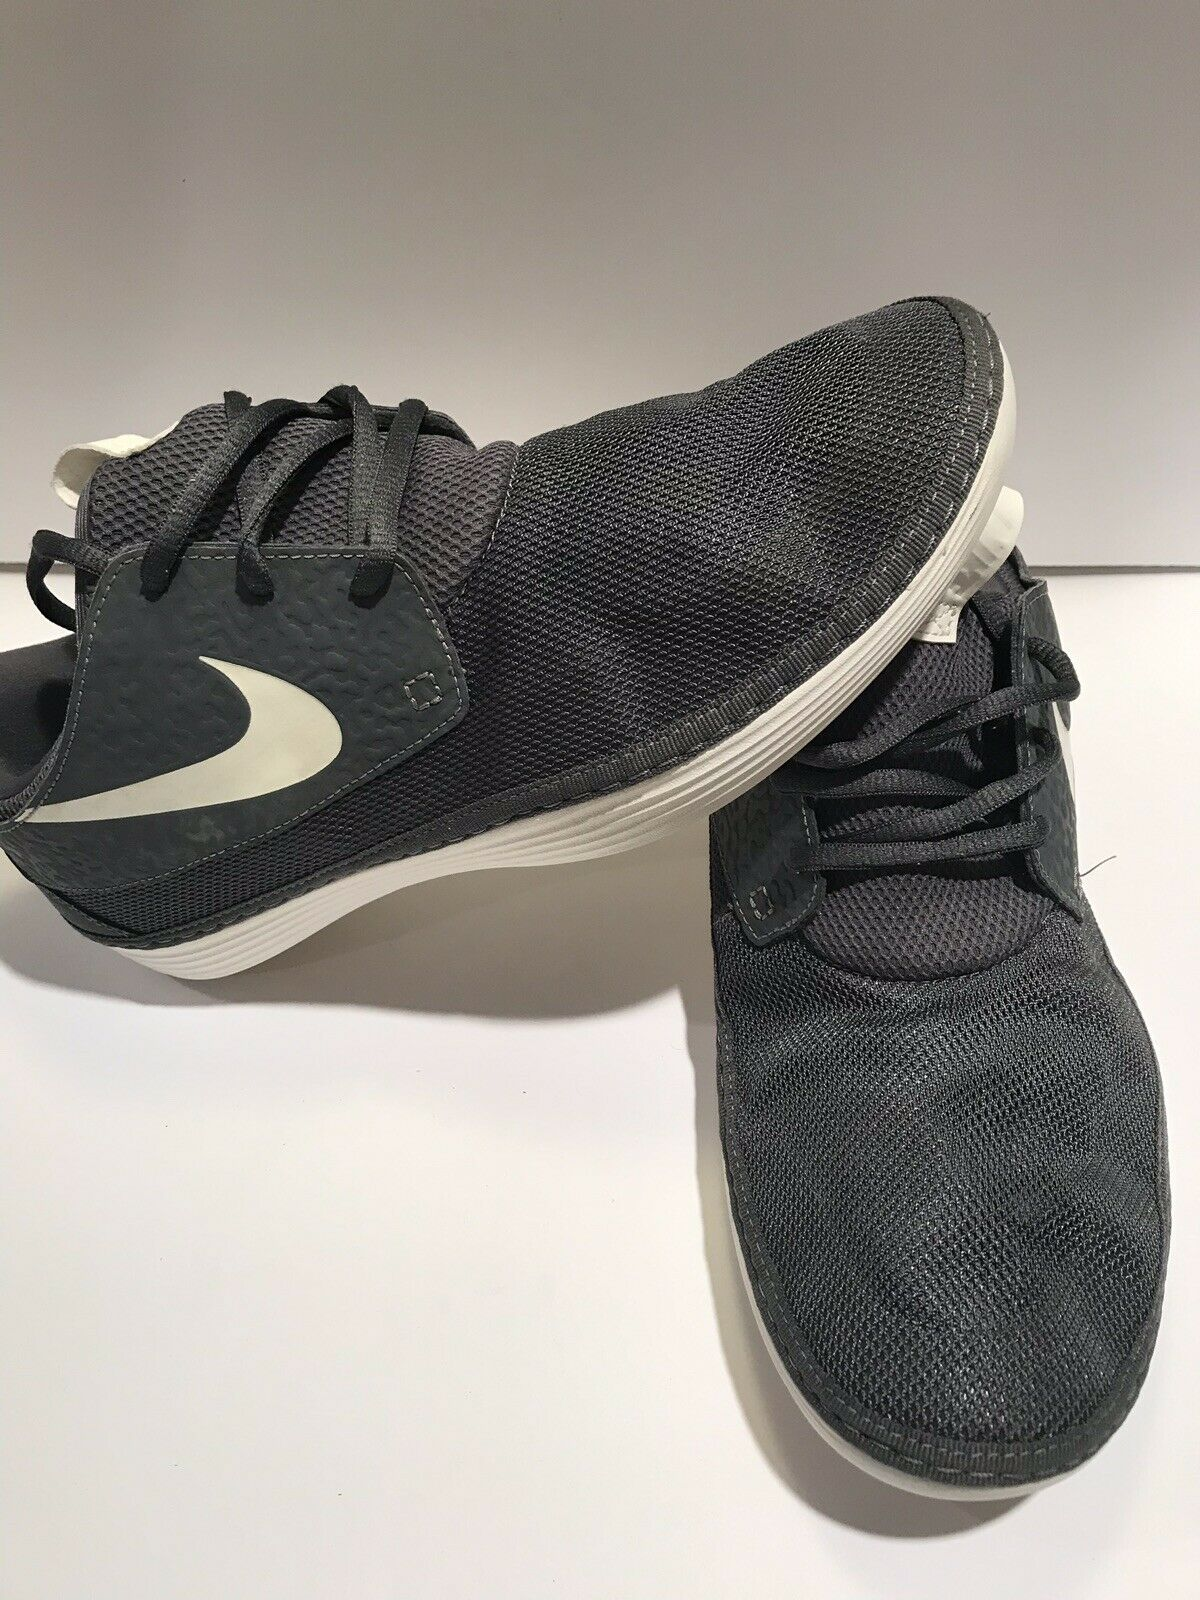 2013 NIKE SOLARSOFT MOCCASIN DARK GREY SAIL WHITE VOLT COOL 555301-003 Size 13